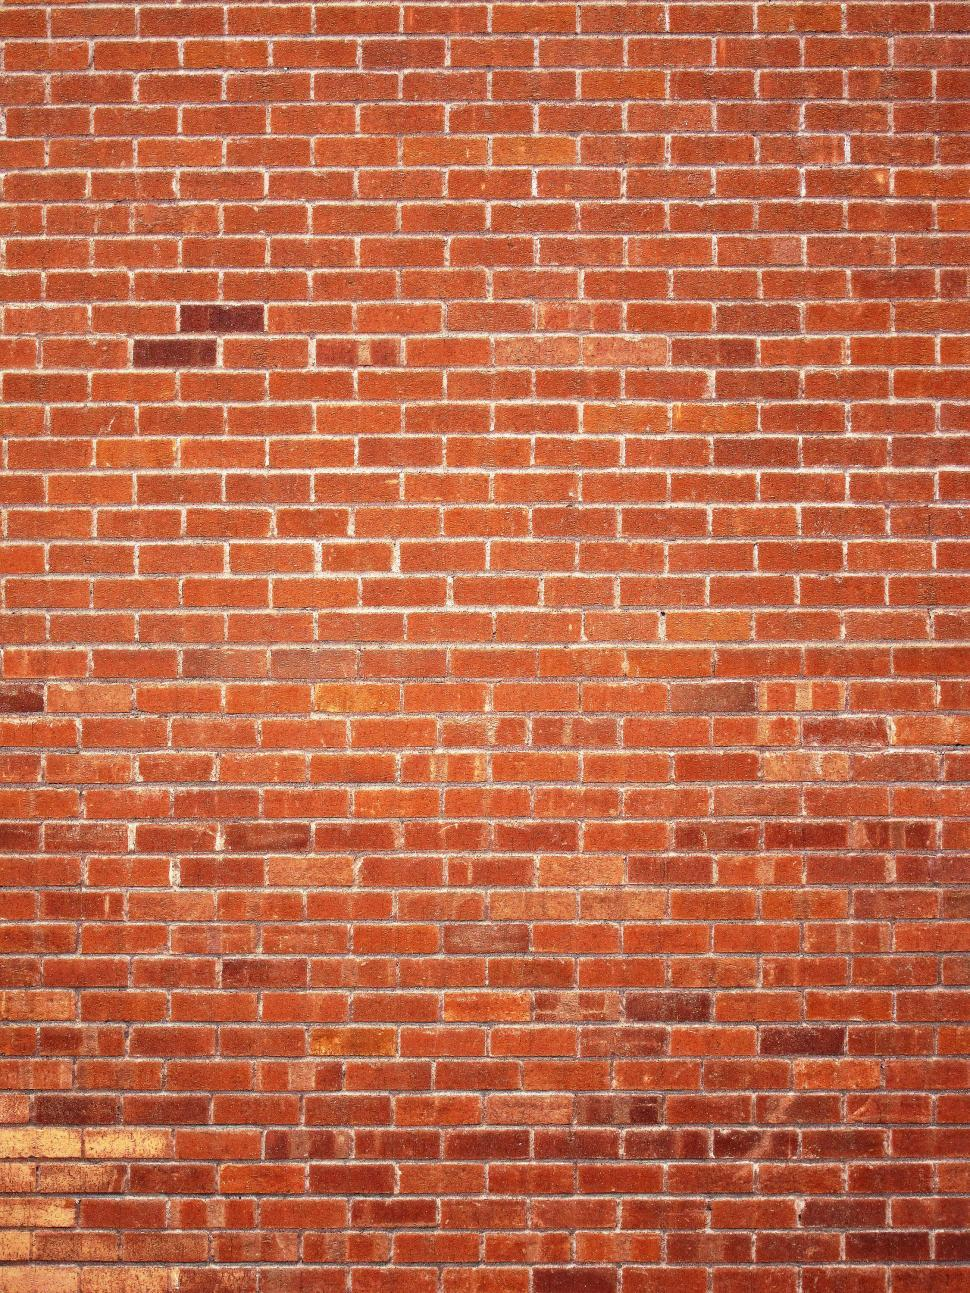 Download Free Stock HD Photo of Red Brick Wall Online